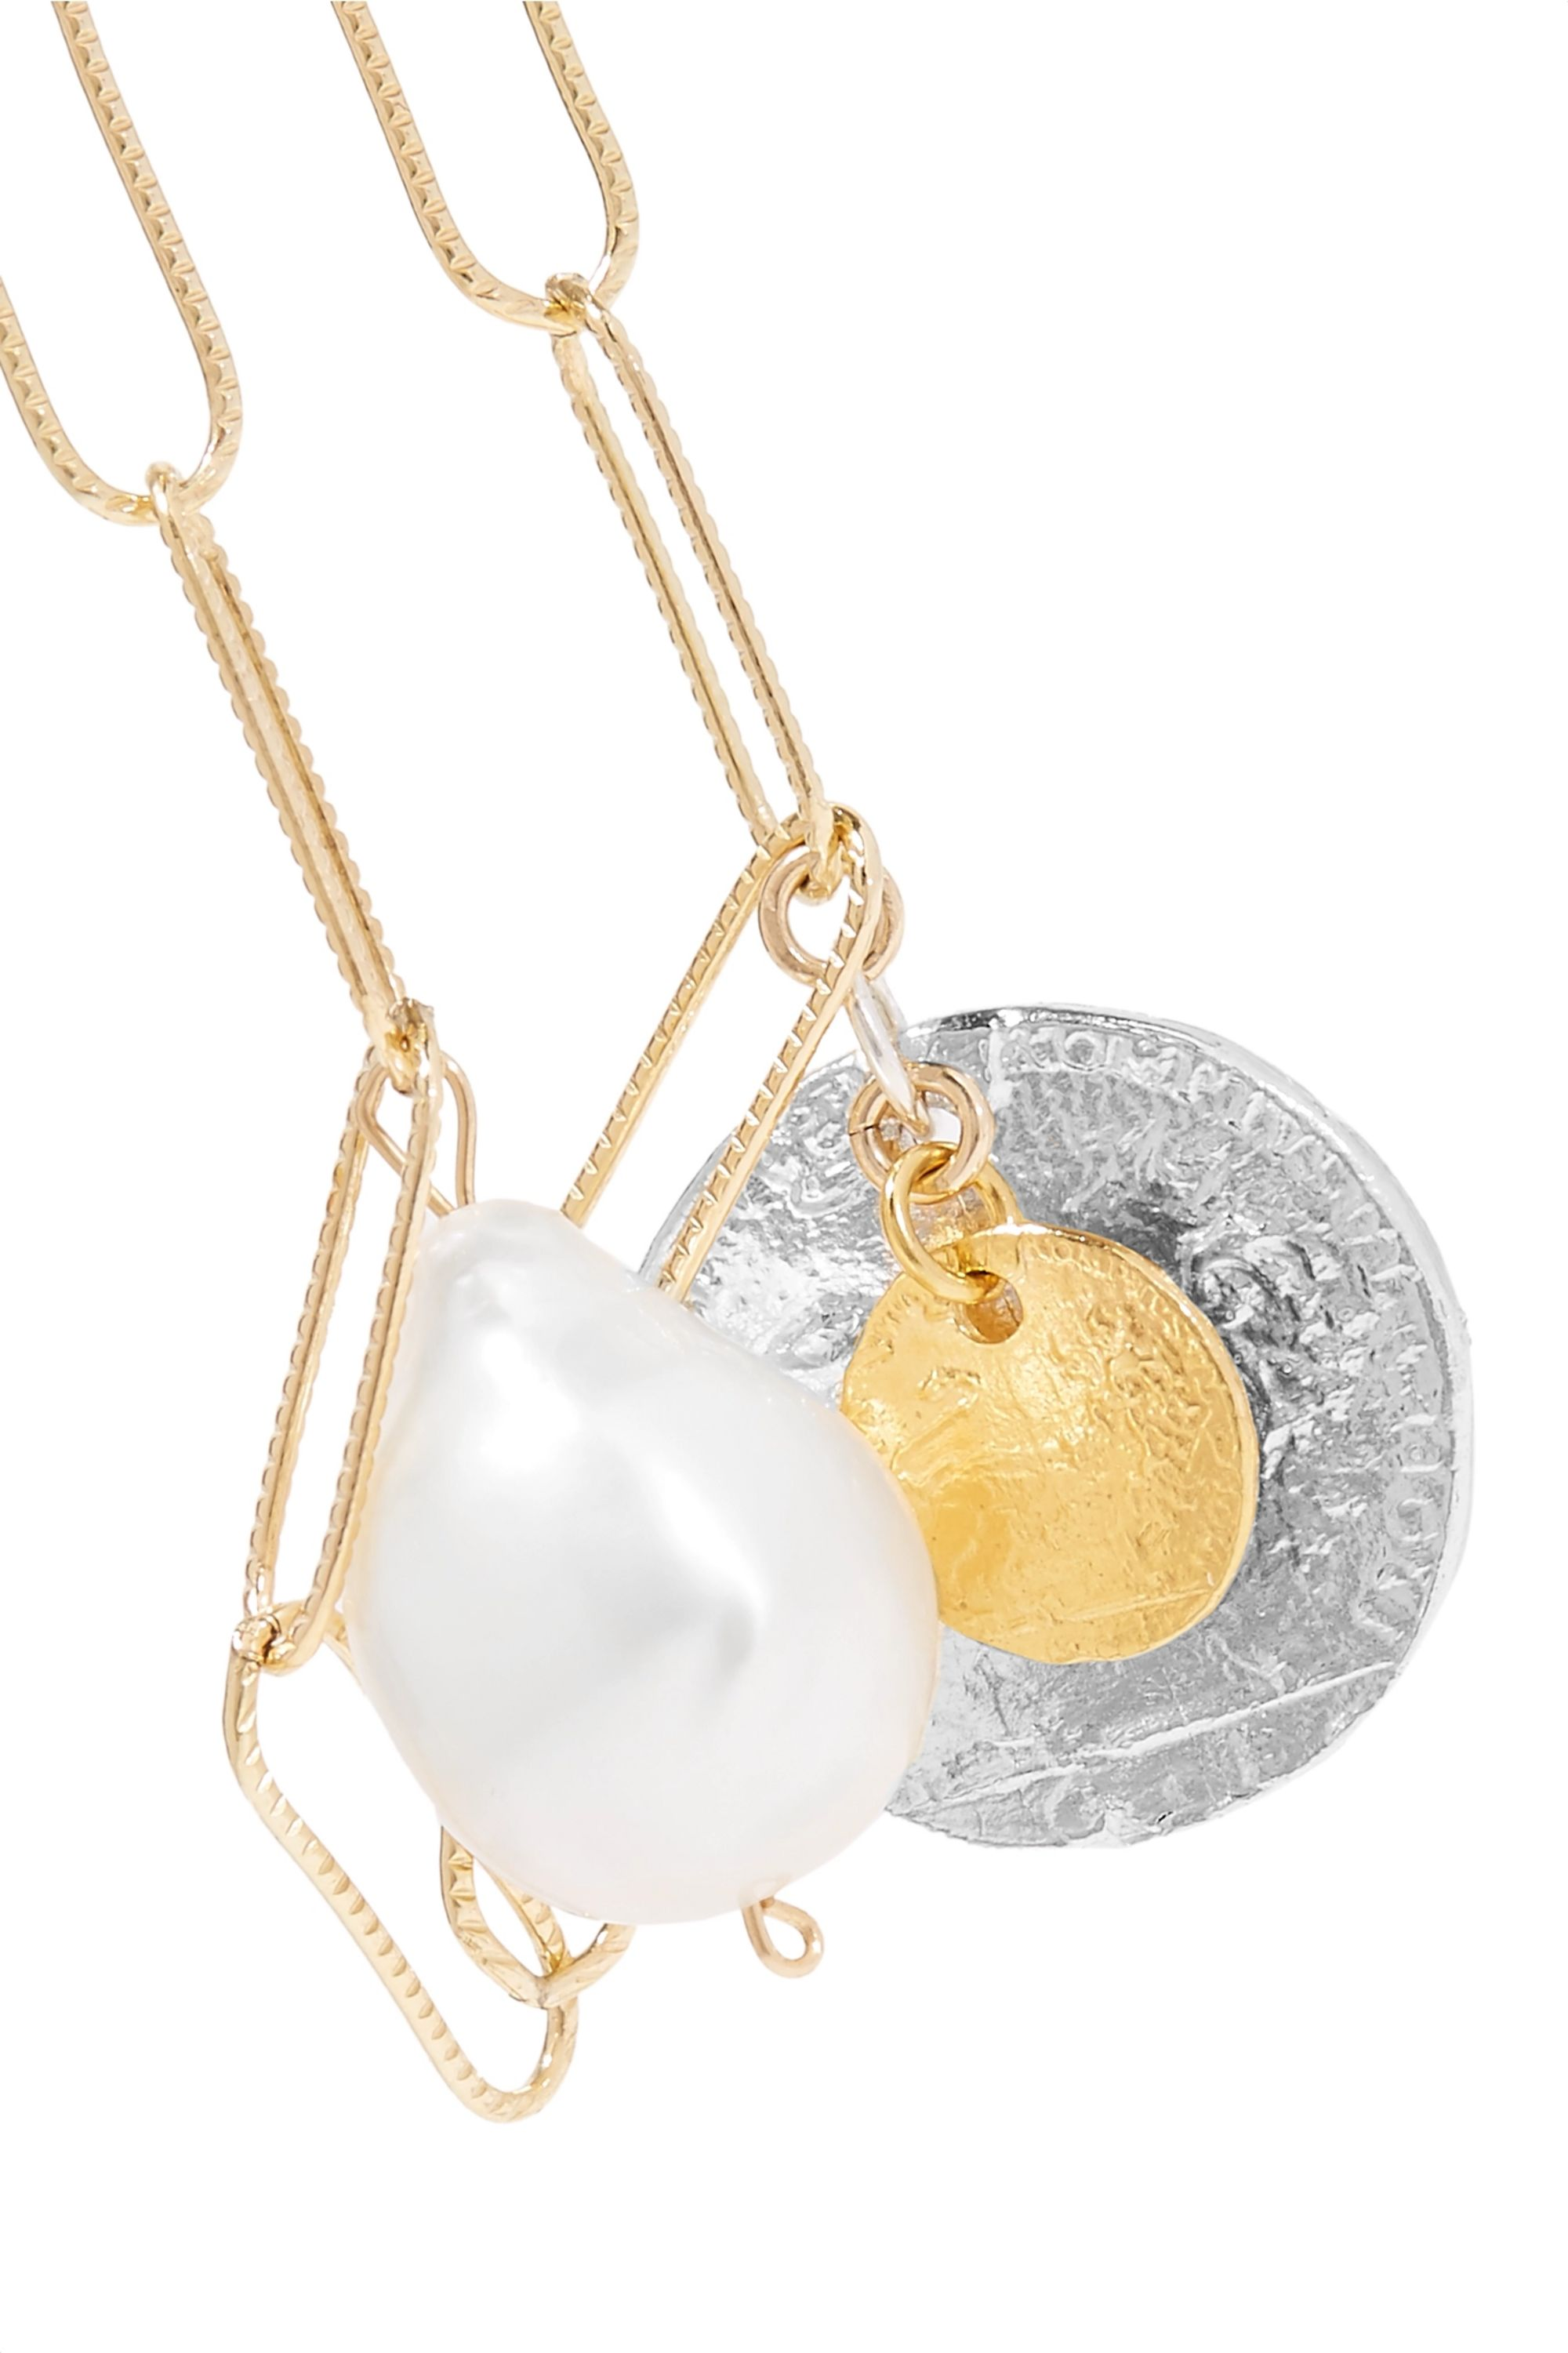 Alighieri The Snow Lion and the Baroque gold-plated pearl necklace